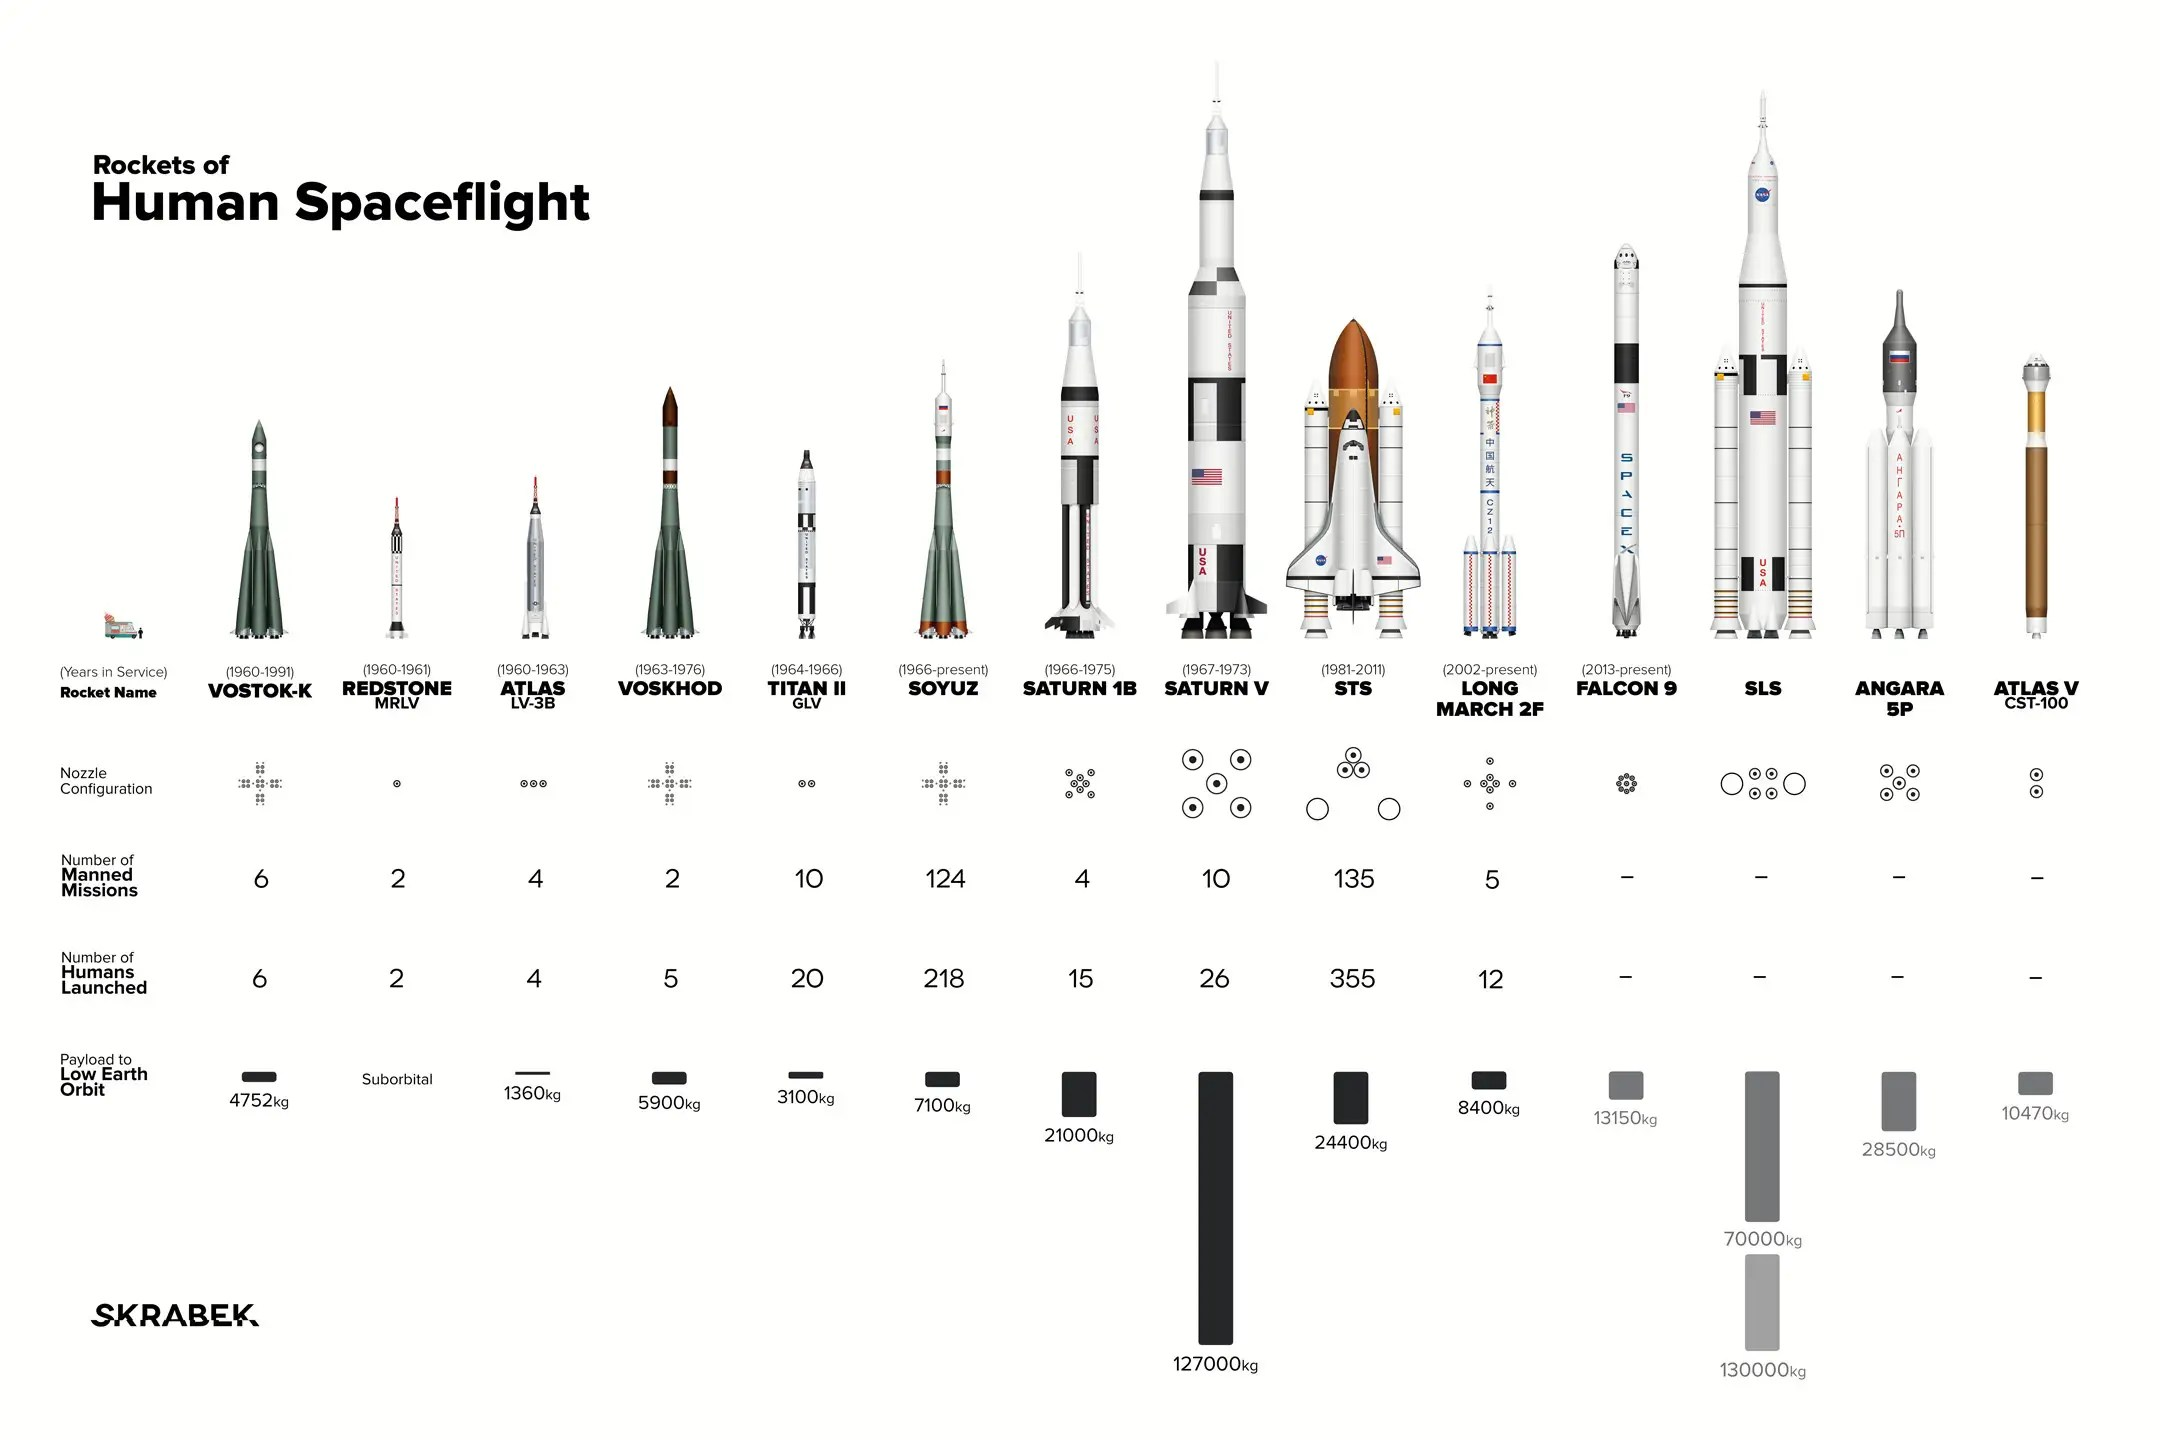 Size Of Rockets